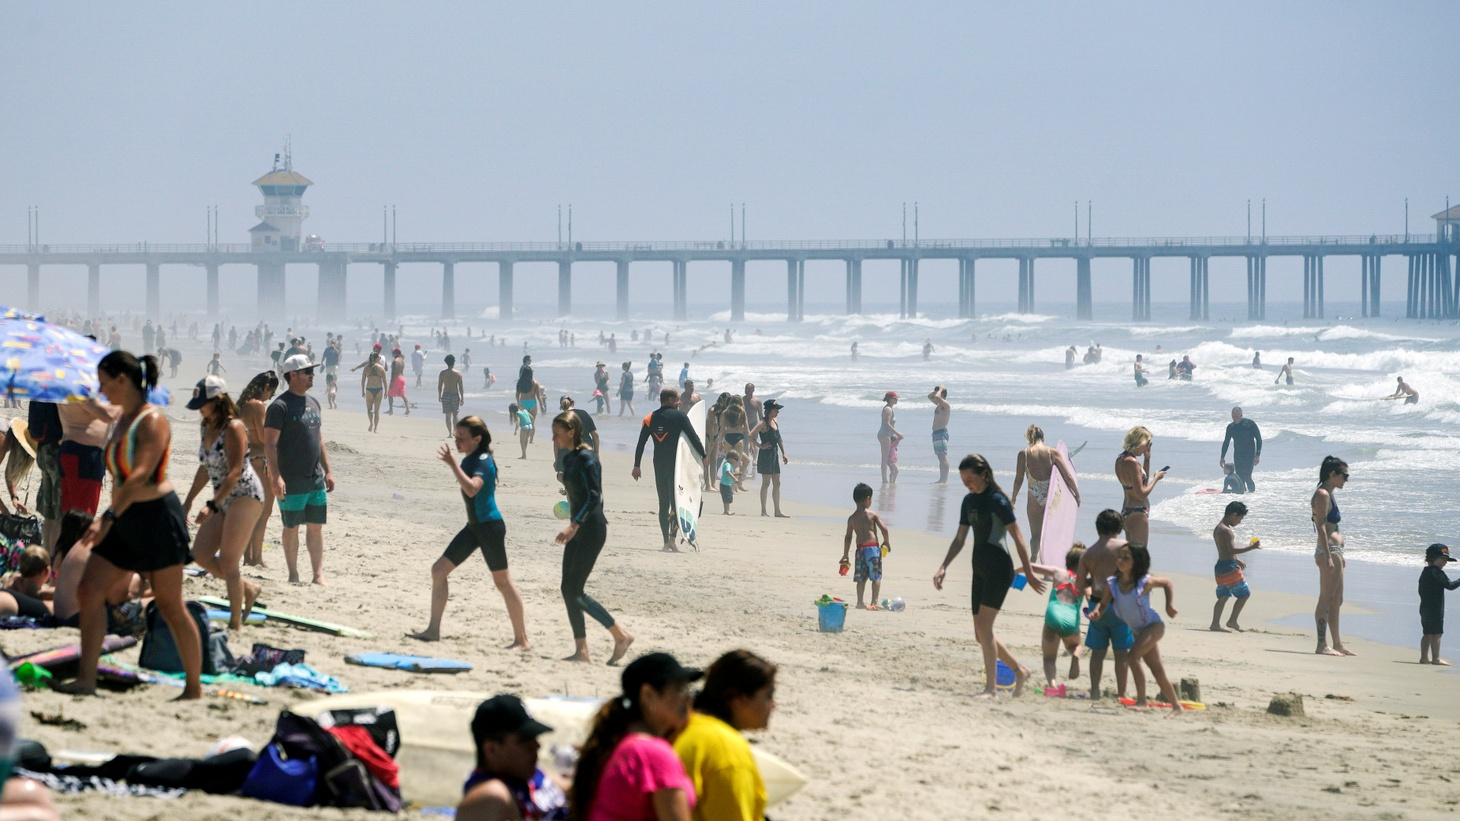 People walk up and down Huntington City Beach during the outbreak of the coronavirus disease (COVID-19), in Huntington Beach, California, U.S., April 25, 2020.